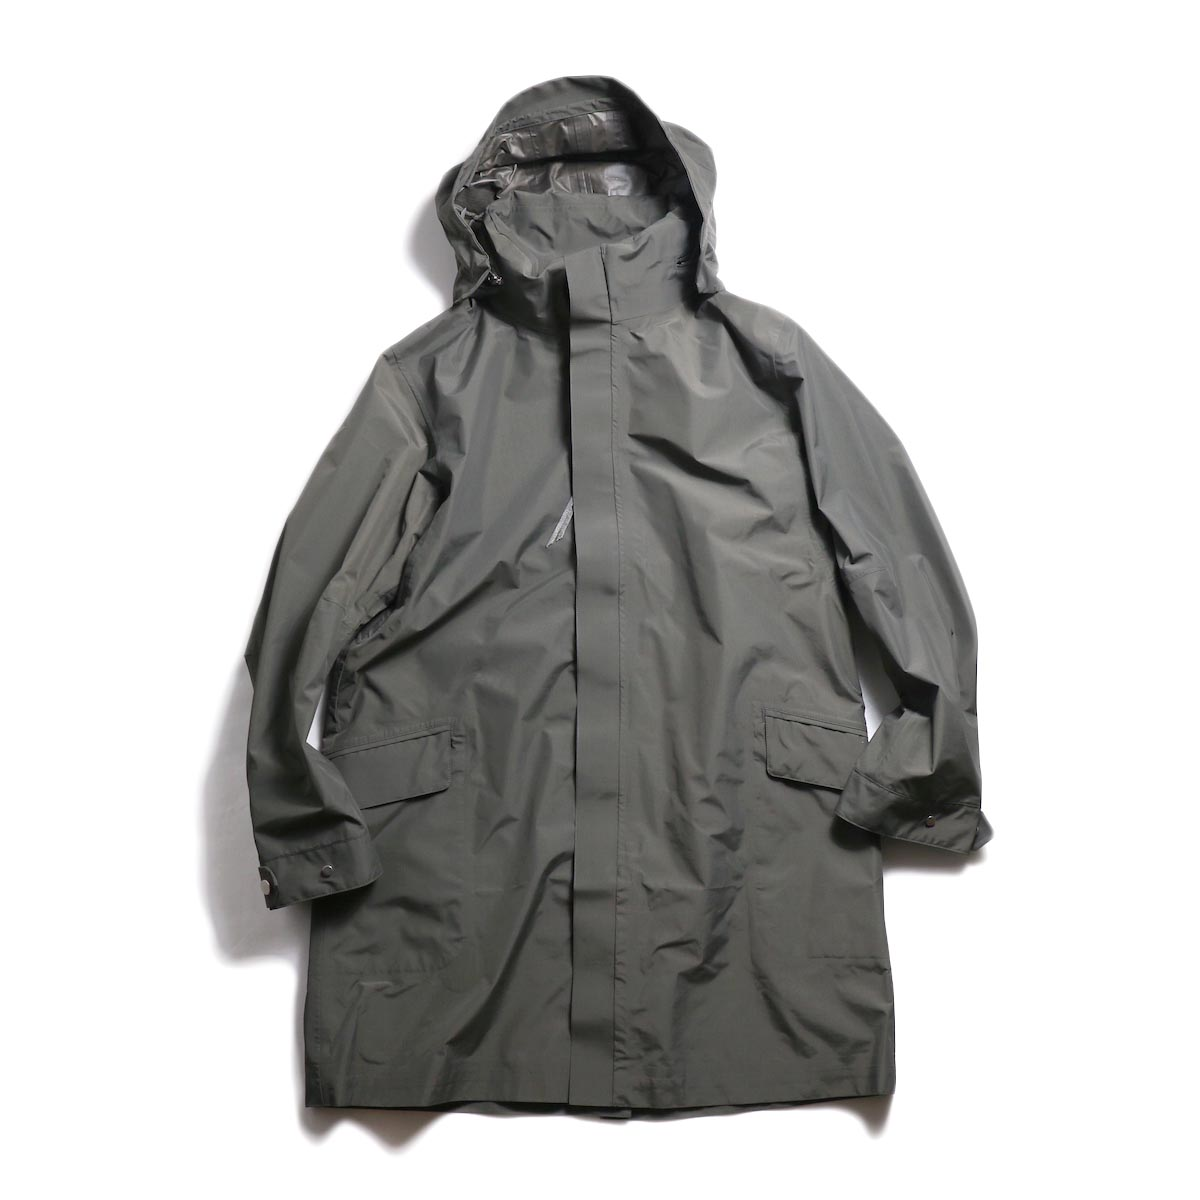 nonnative / SCIENTIST COAT NYLON RIPSTOP WITH GORE-TEX 2L -Charcoal